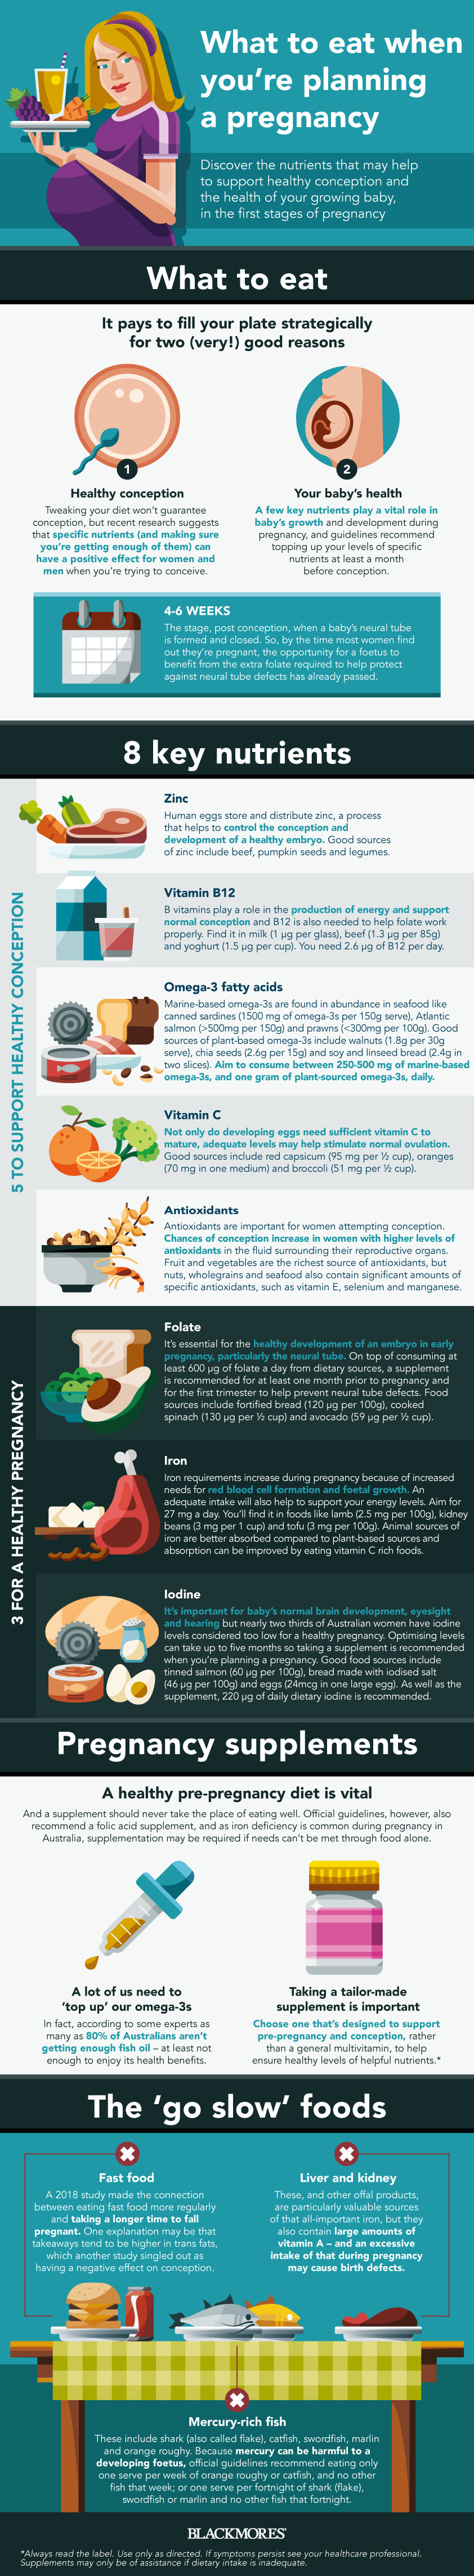 What to eat when you are planning a pregnancy { INFOGRAPHIC} | Blackmores